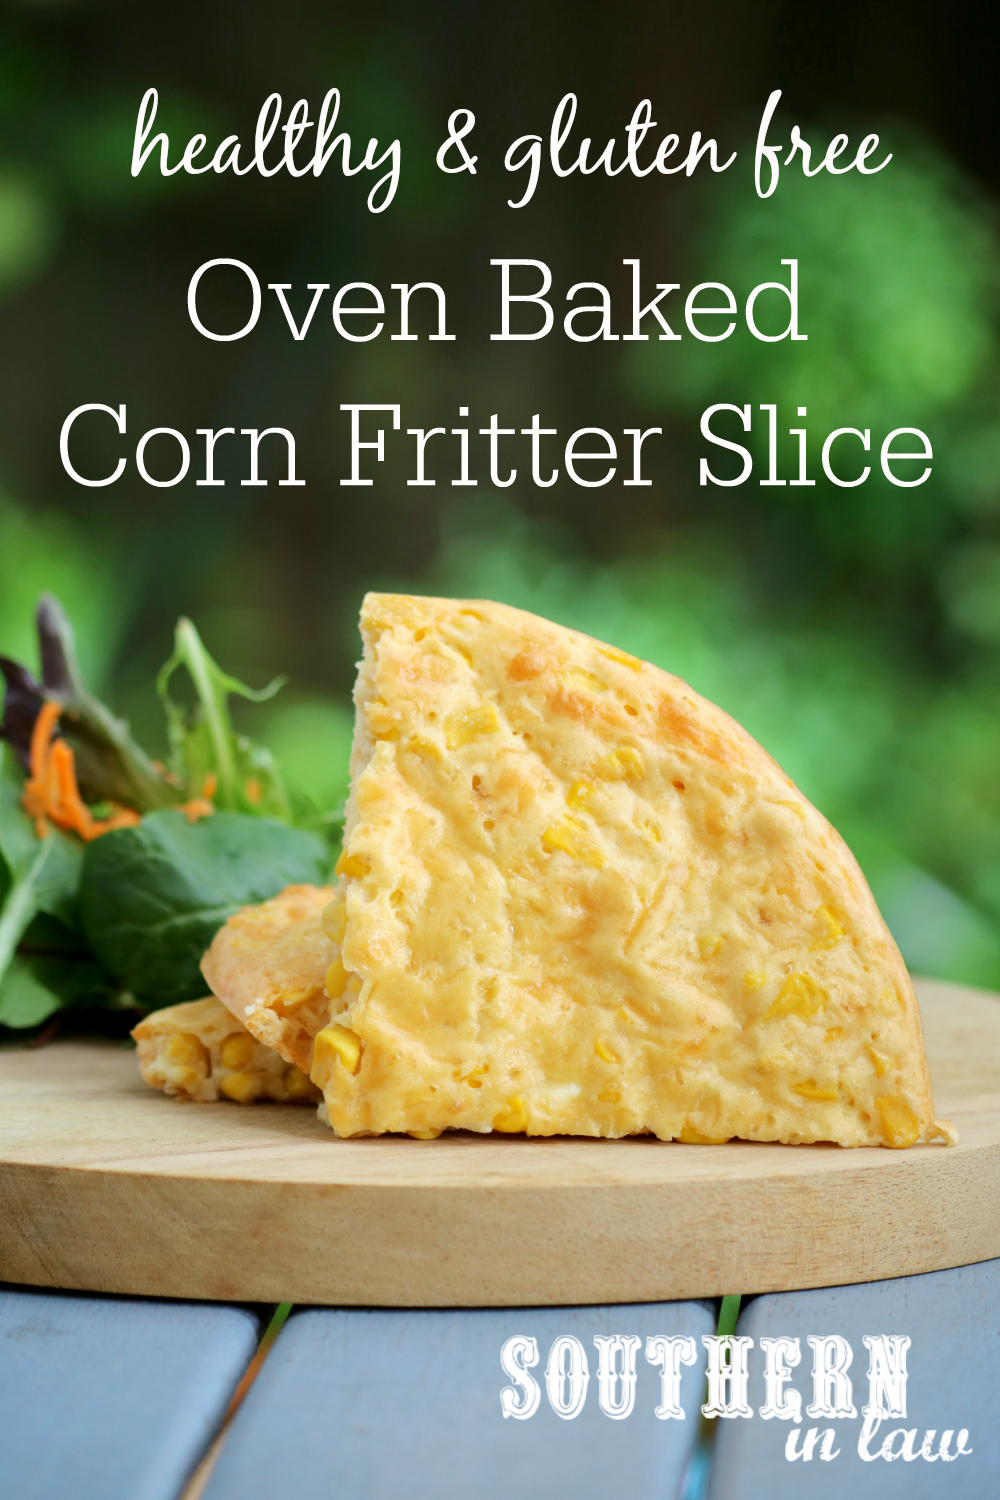 Southern in law recipe easy baked corn fritter slice easy oven baked corn fritter slice recipe low fat gluten free healthy forumfinder Image collections